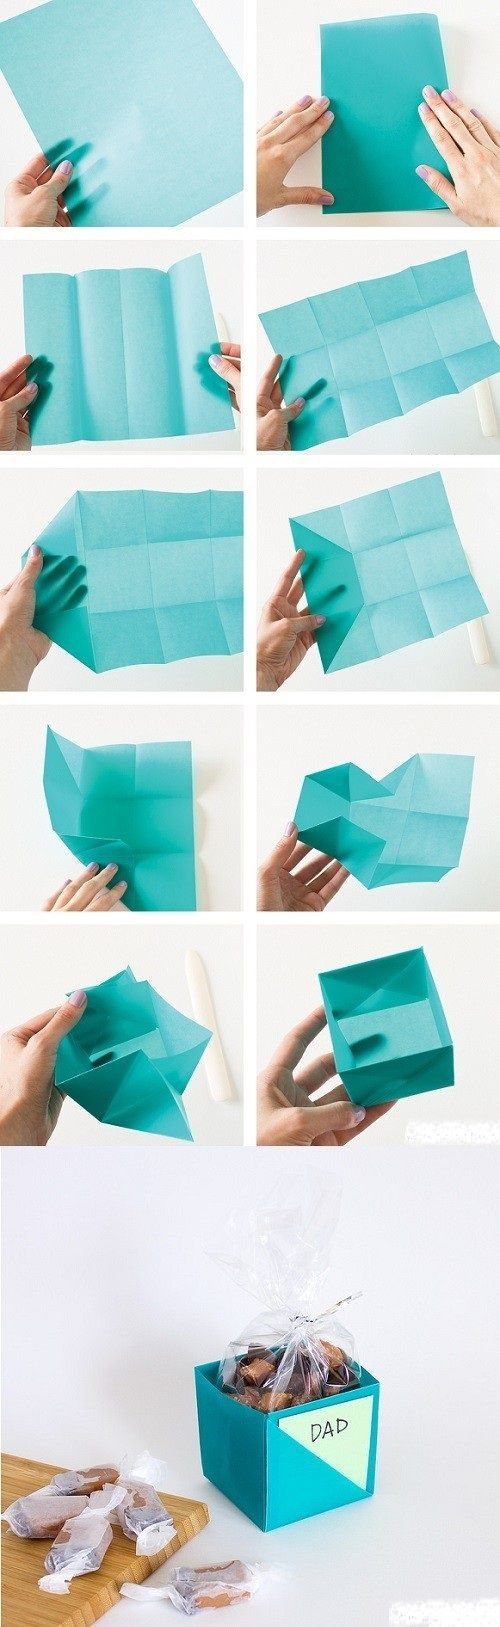 Diy simple gift box from paper do it yourself pinterest simple diy simple gift box from paper solutioingenieria Image collections